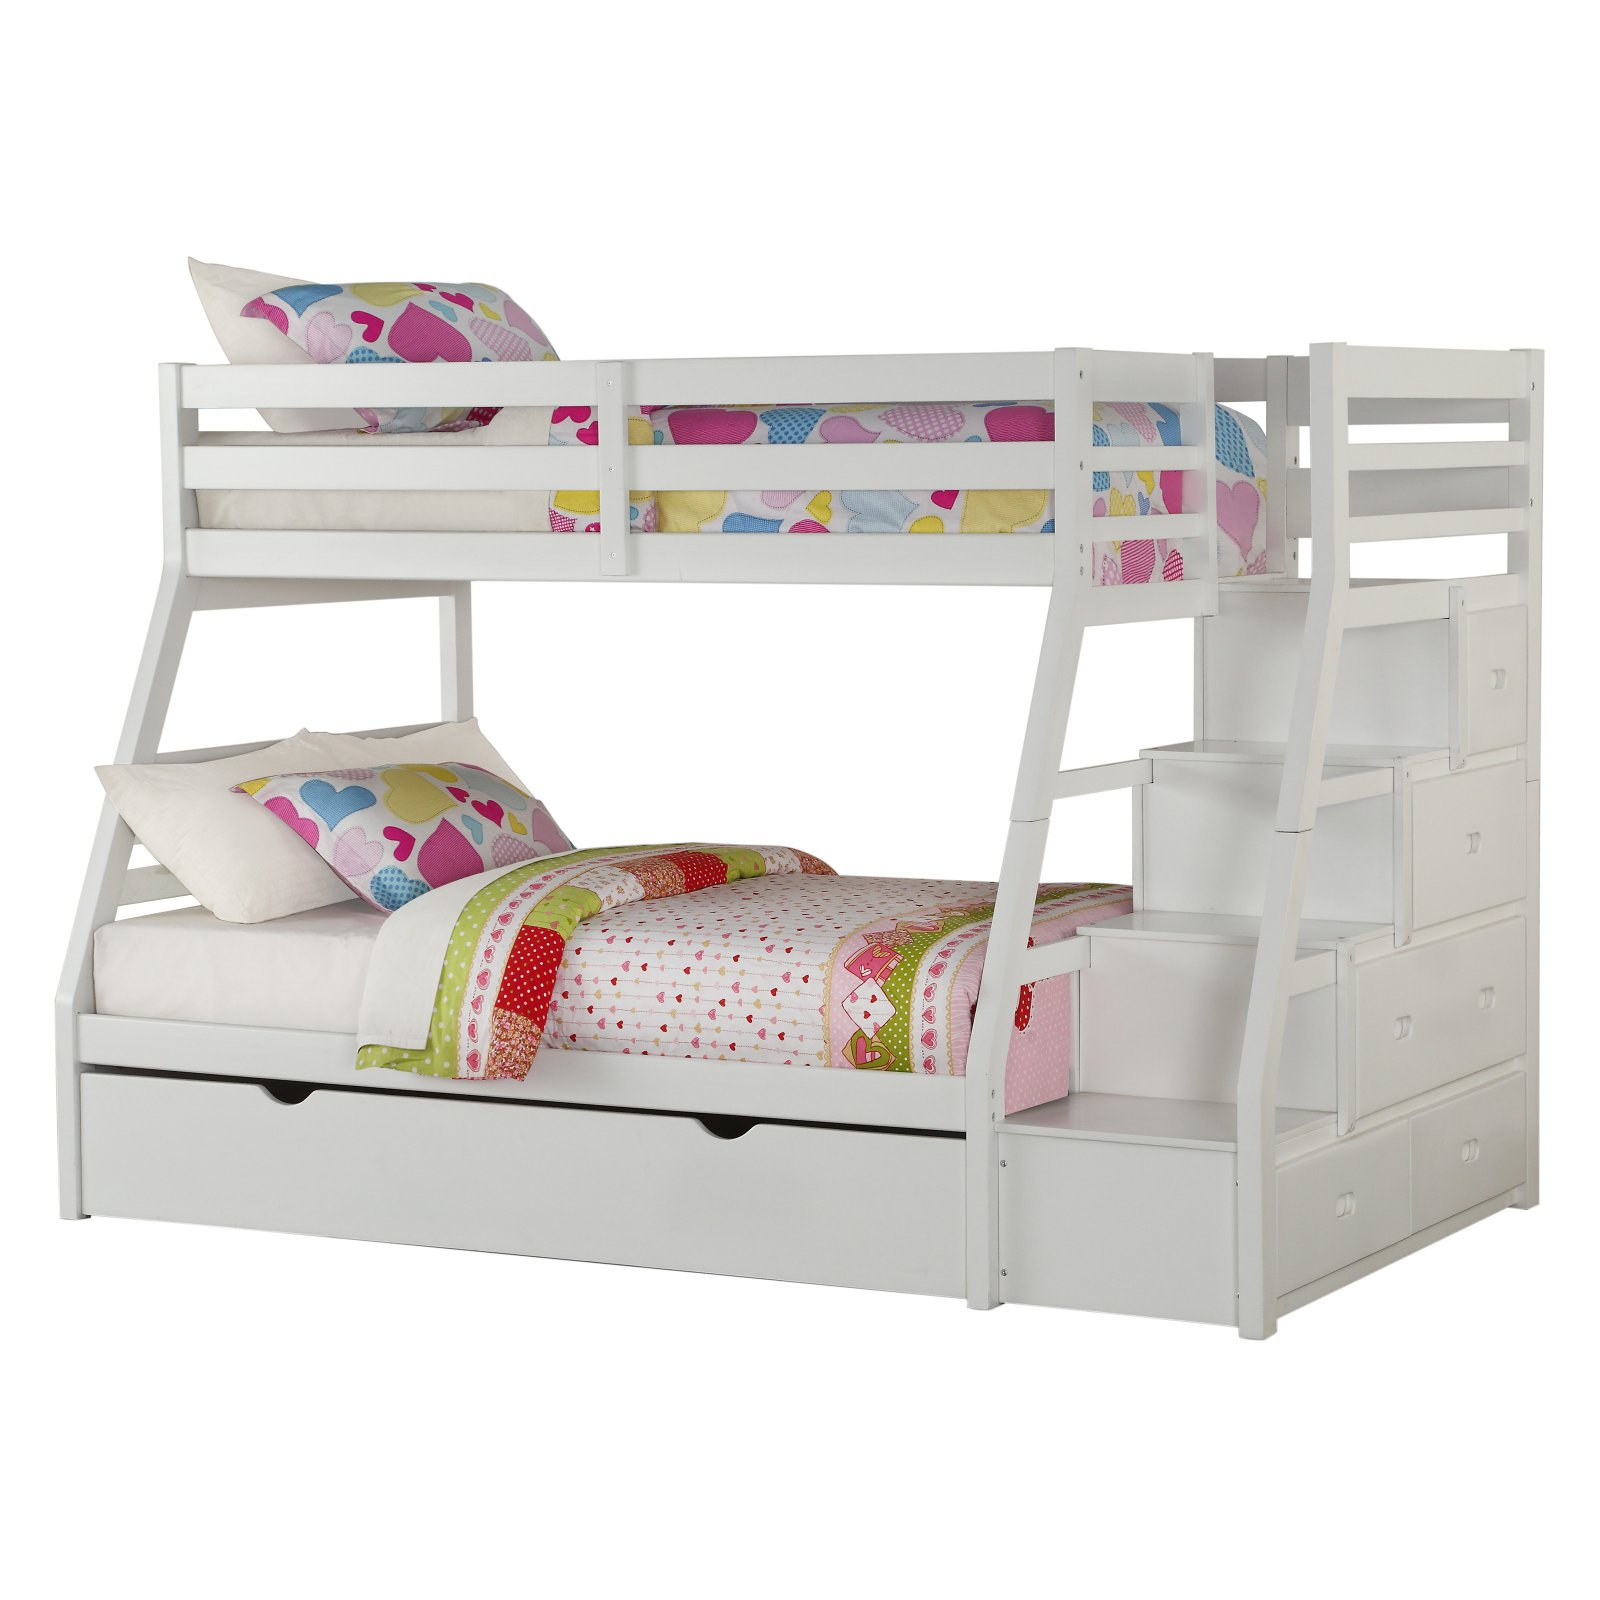 Acme Furniture Jason Twin over Full Bunk Bed by Acme Furniture